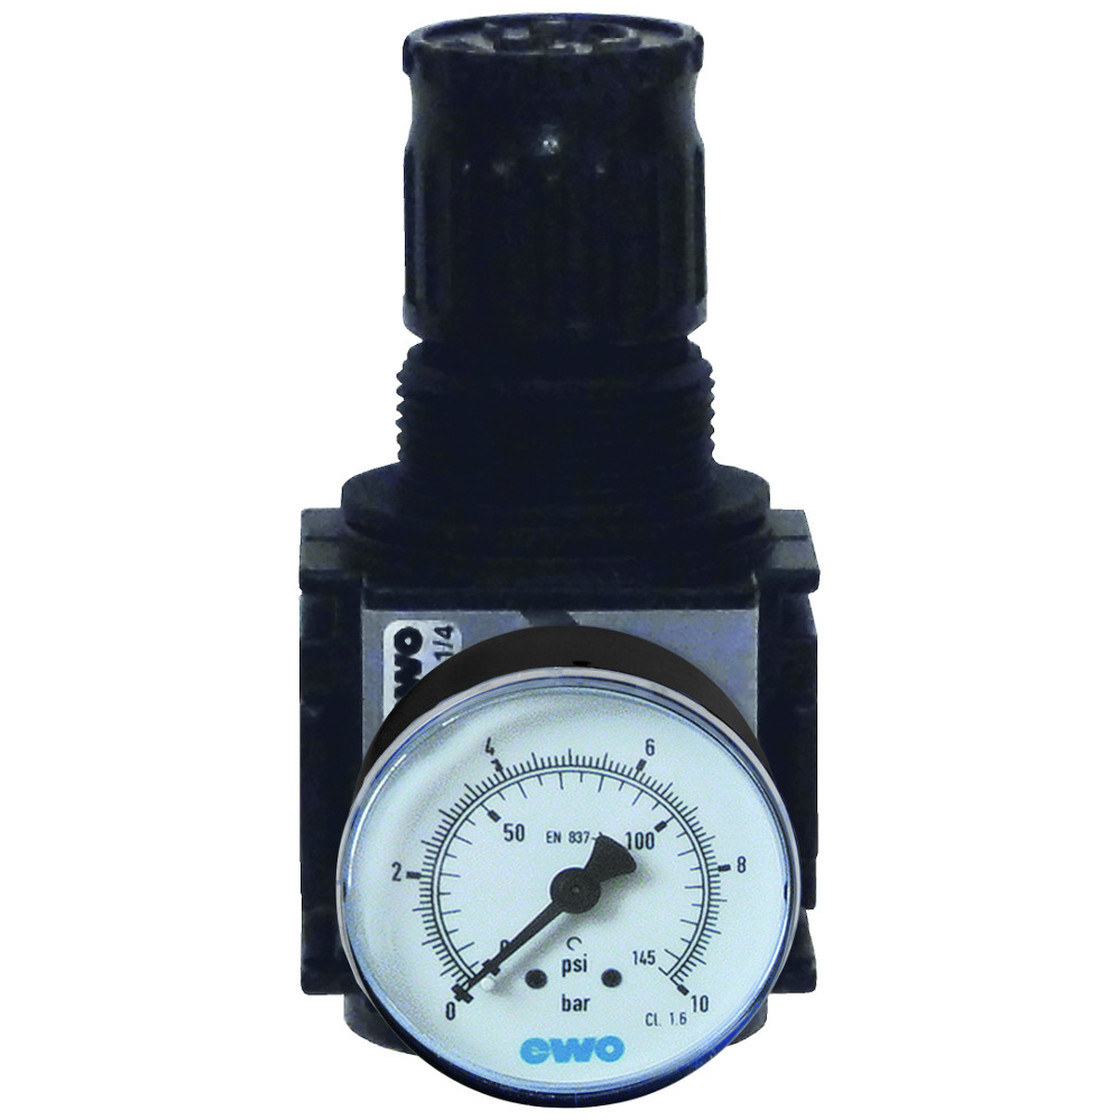 Precision Pressure Gauges : Precision pressure regulators ewo variobloc type w